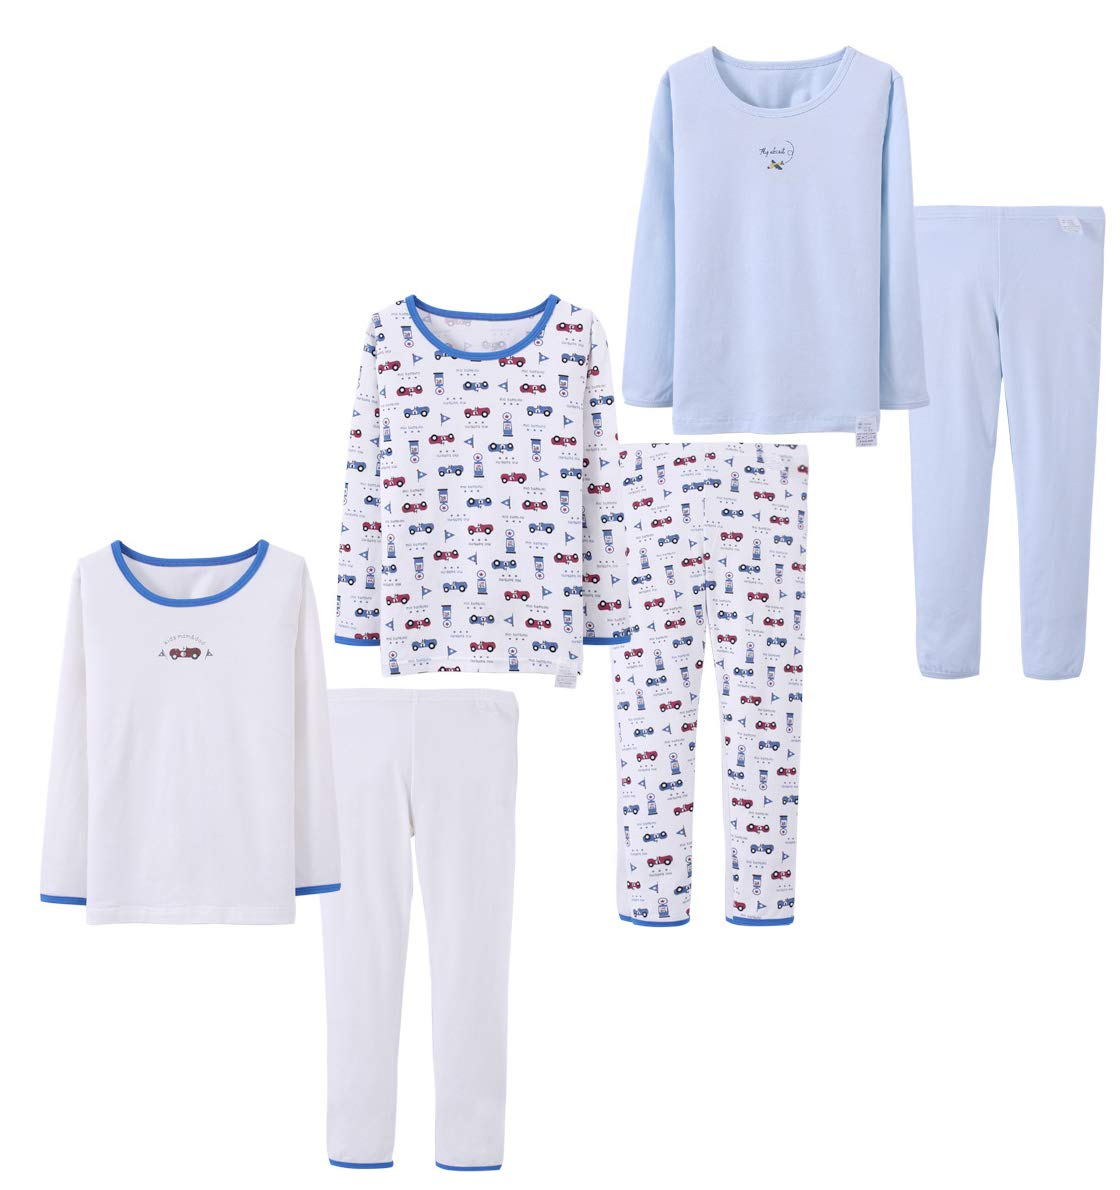 Abalacoco Big Girls Boys 3 Sets (6pcs) Cotton Longs sleeve Undershirts Autumn Winter Thermal Underwear Pants Suit 4-10T (6-7 Years, White/Car/Blue) by Abalacoco